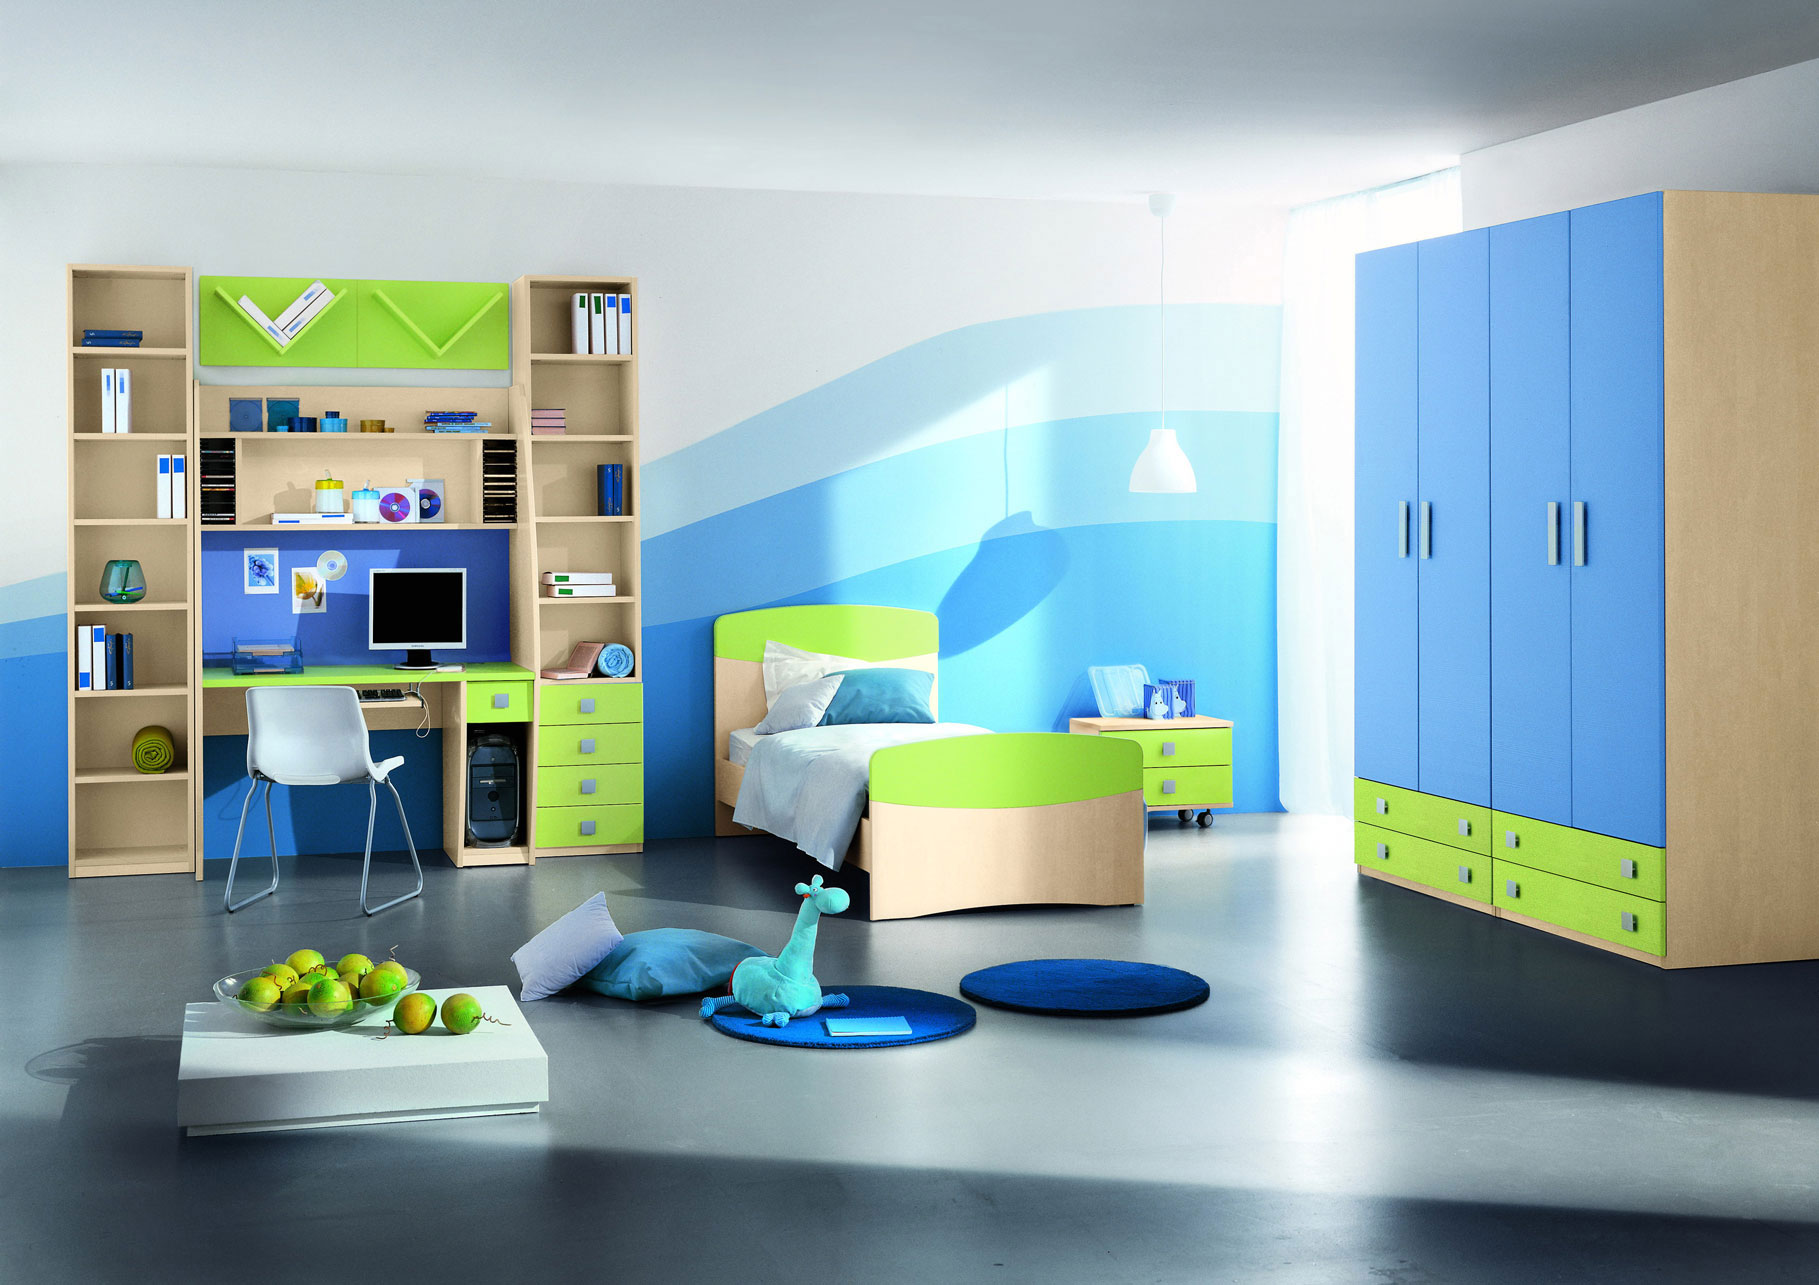 Remarkable Blue and Green Kids Room Ideas 1819 x 1285 · 287 kB · jpeg